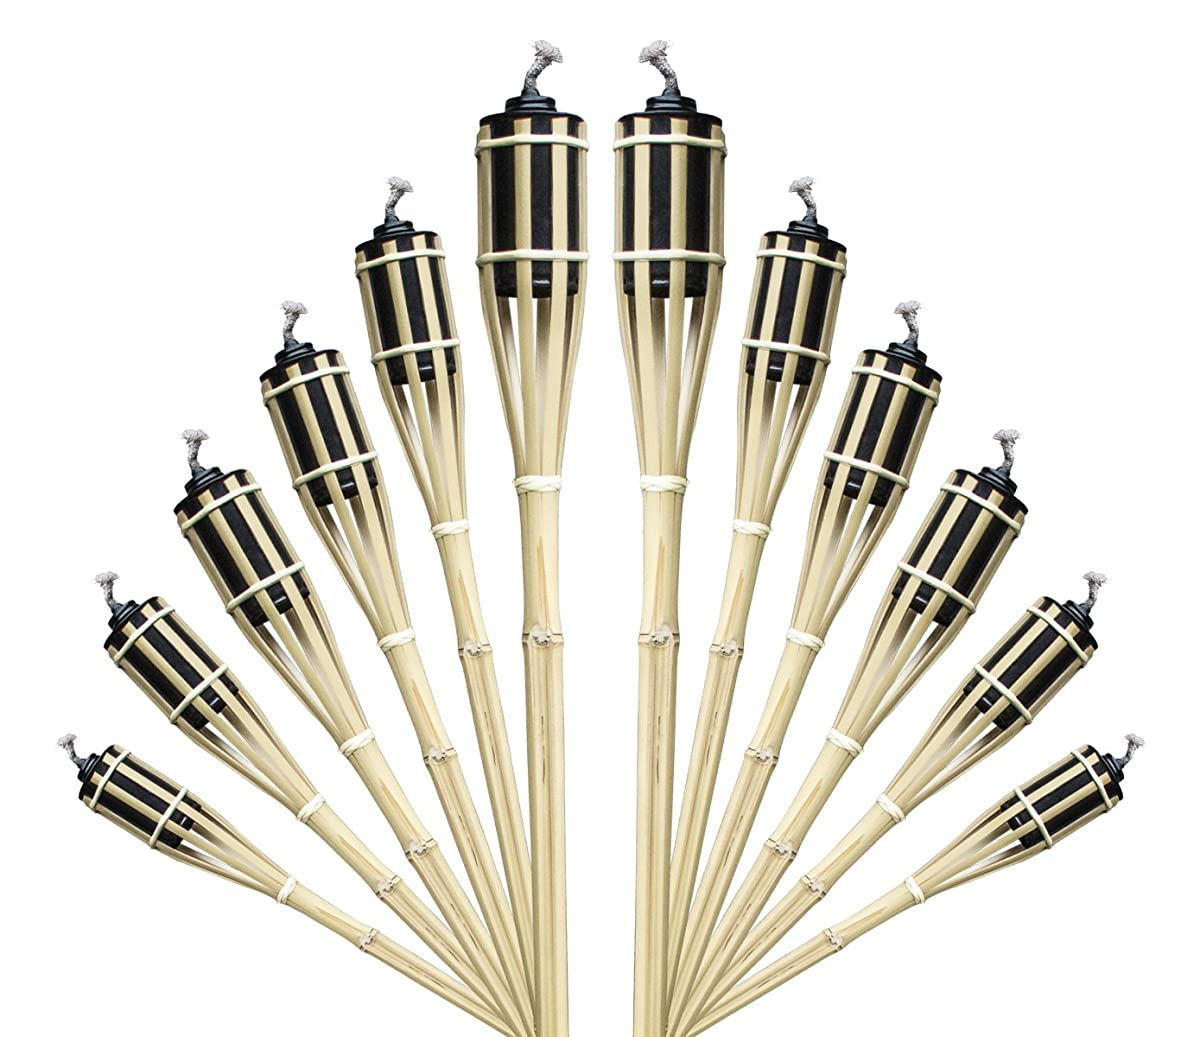 Bamboo Torches – Includes Metal Oil Canisters